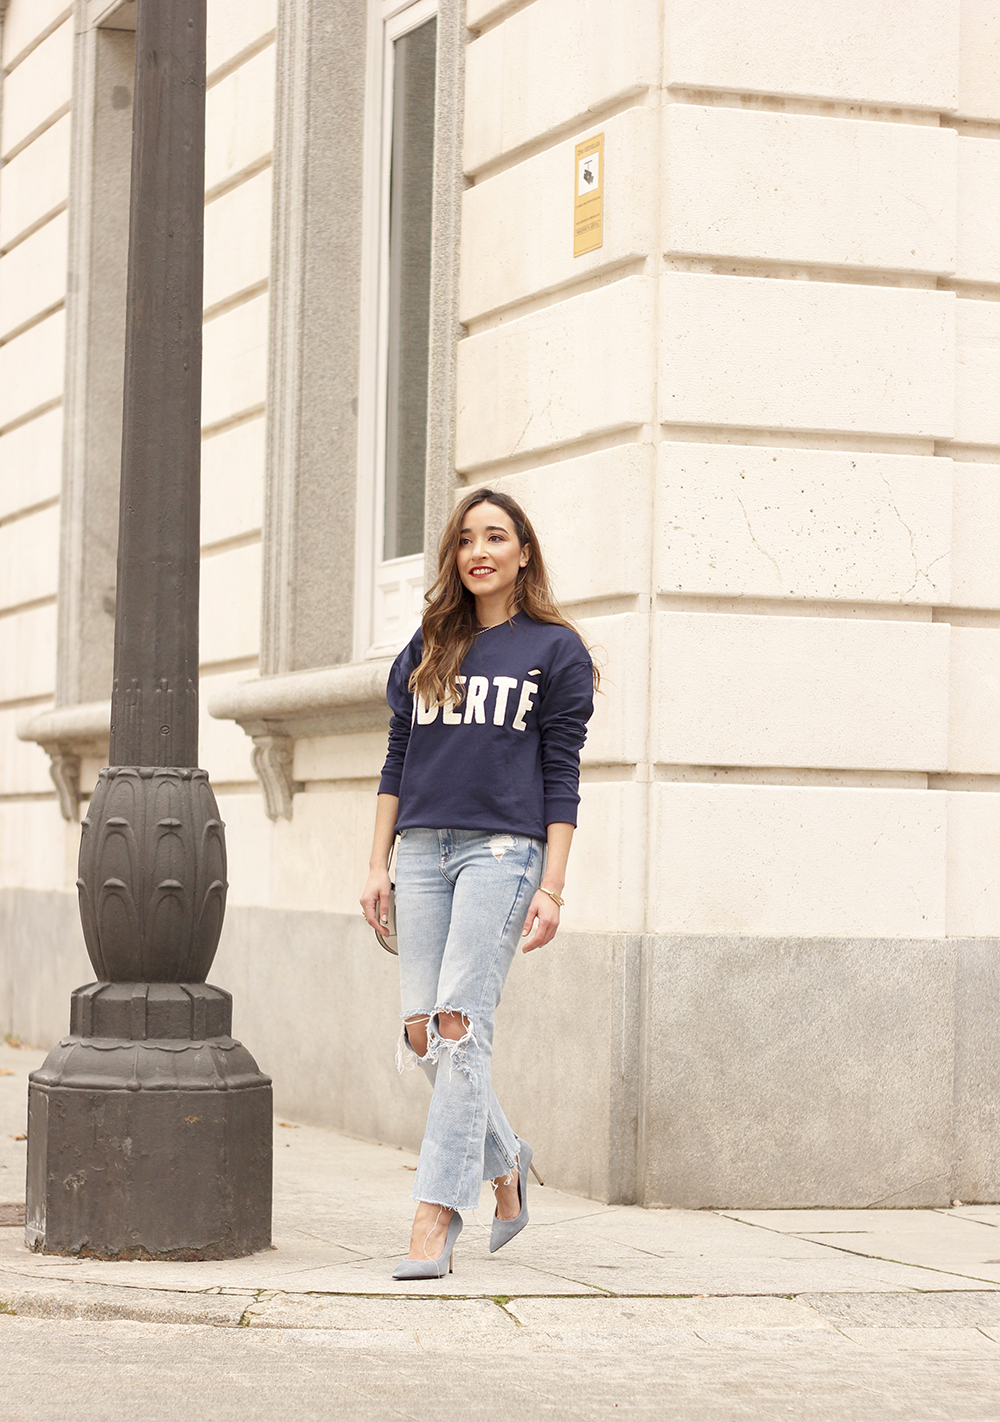 Sweatshirt ripped jeans clavin klein white bag high heels street style outfit 20191